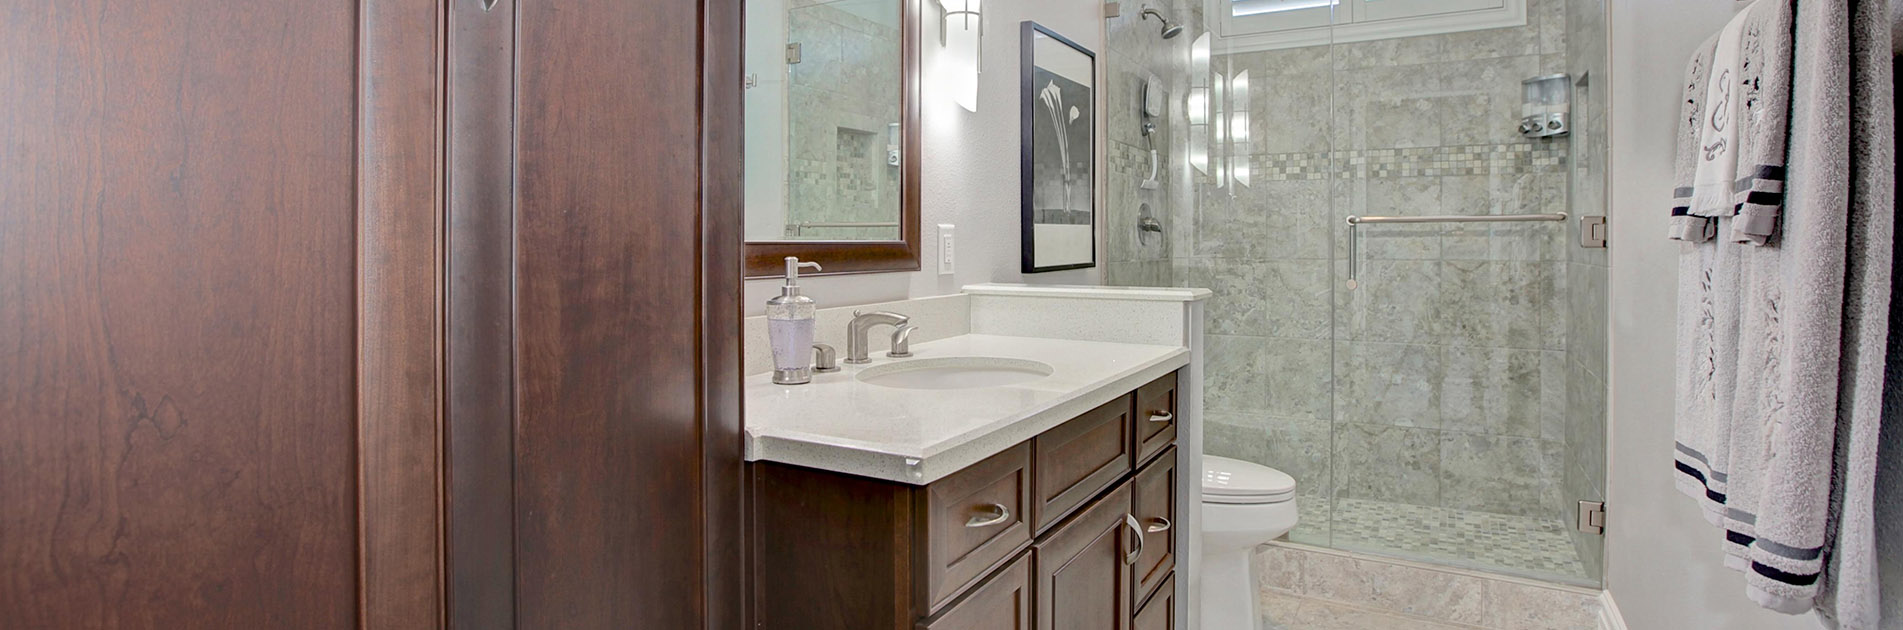 Bathroom Remodel Orange County Home Remodeling Orange County  Kitchen & Bathroom Remodeling